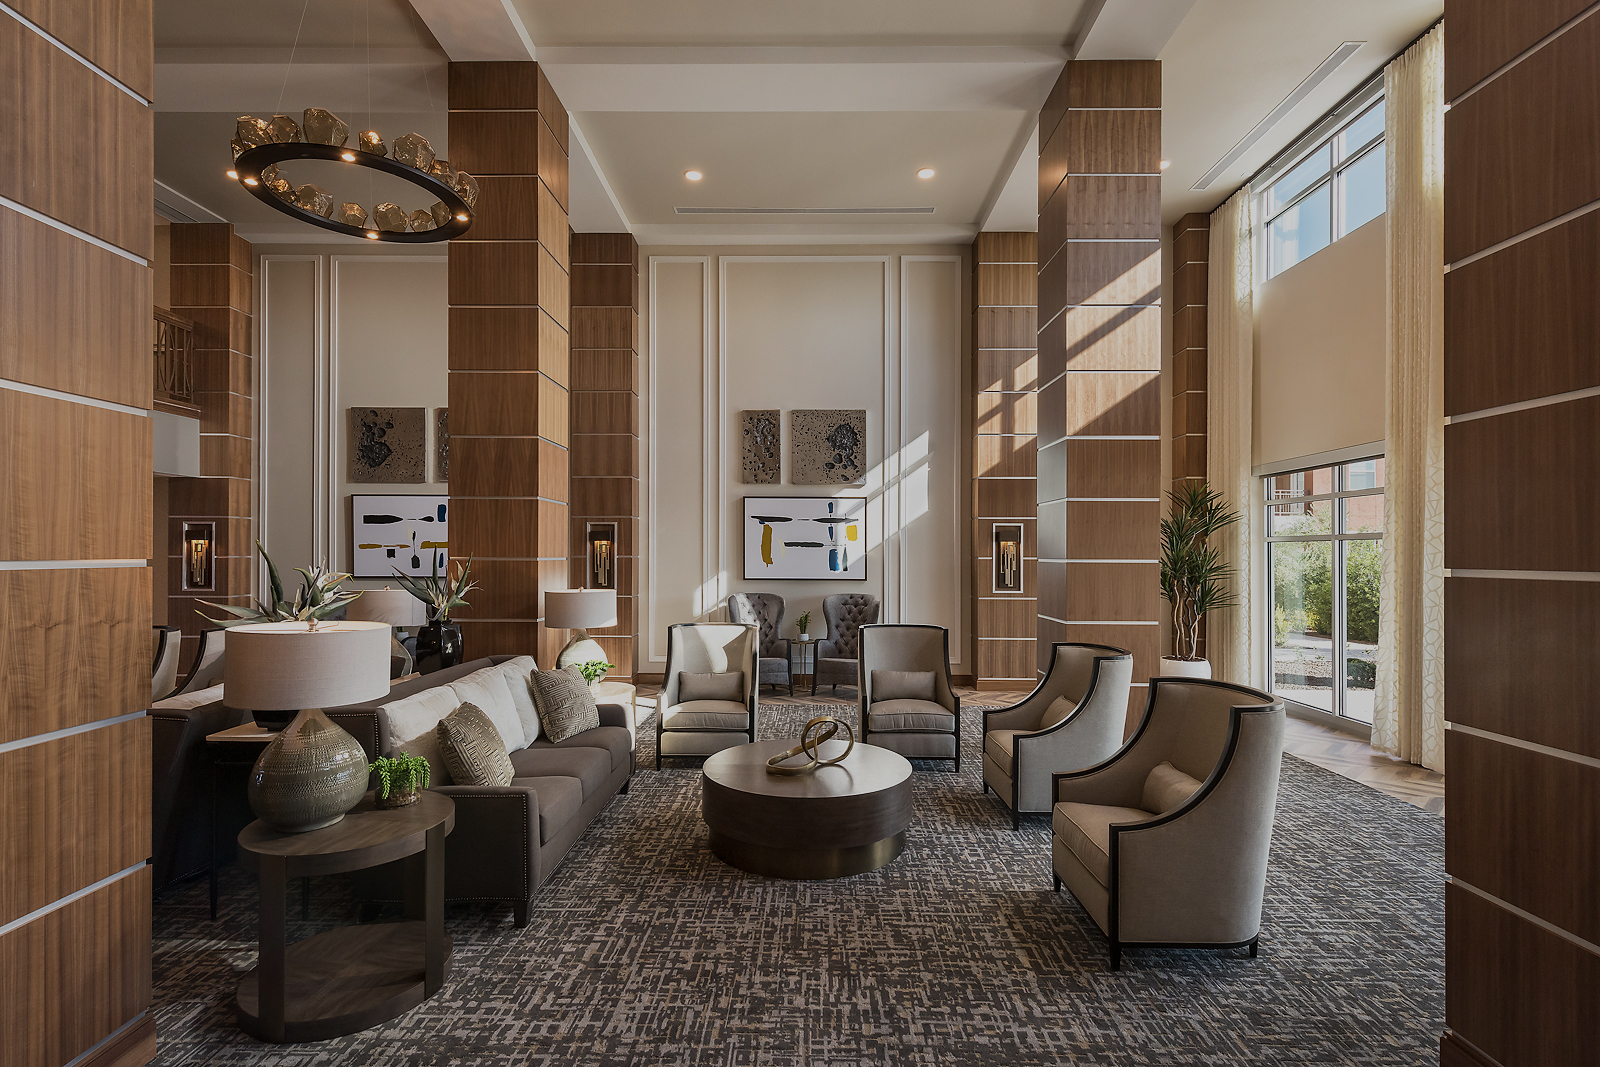 Interior Decorating for Assisted Living: Ideas for Creating a New Home for the Elderly